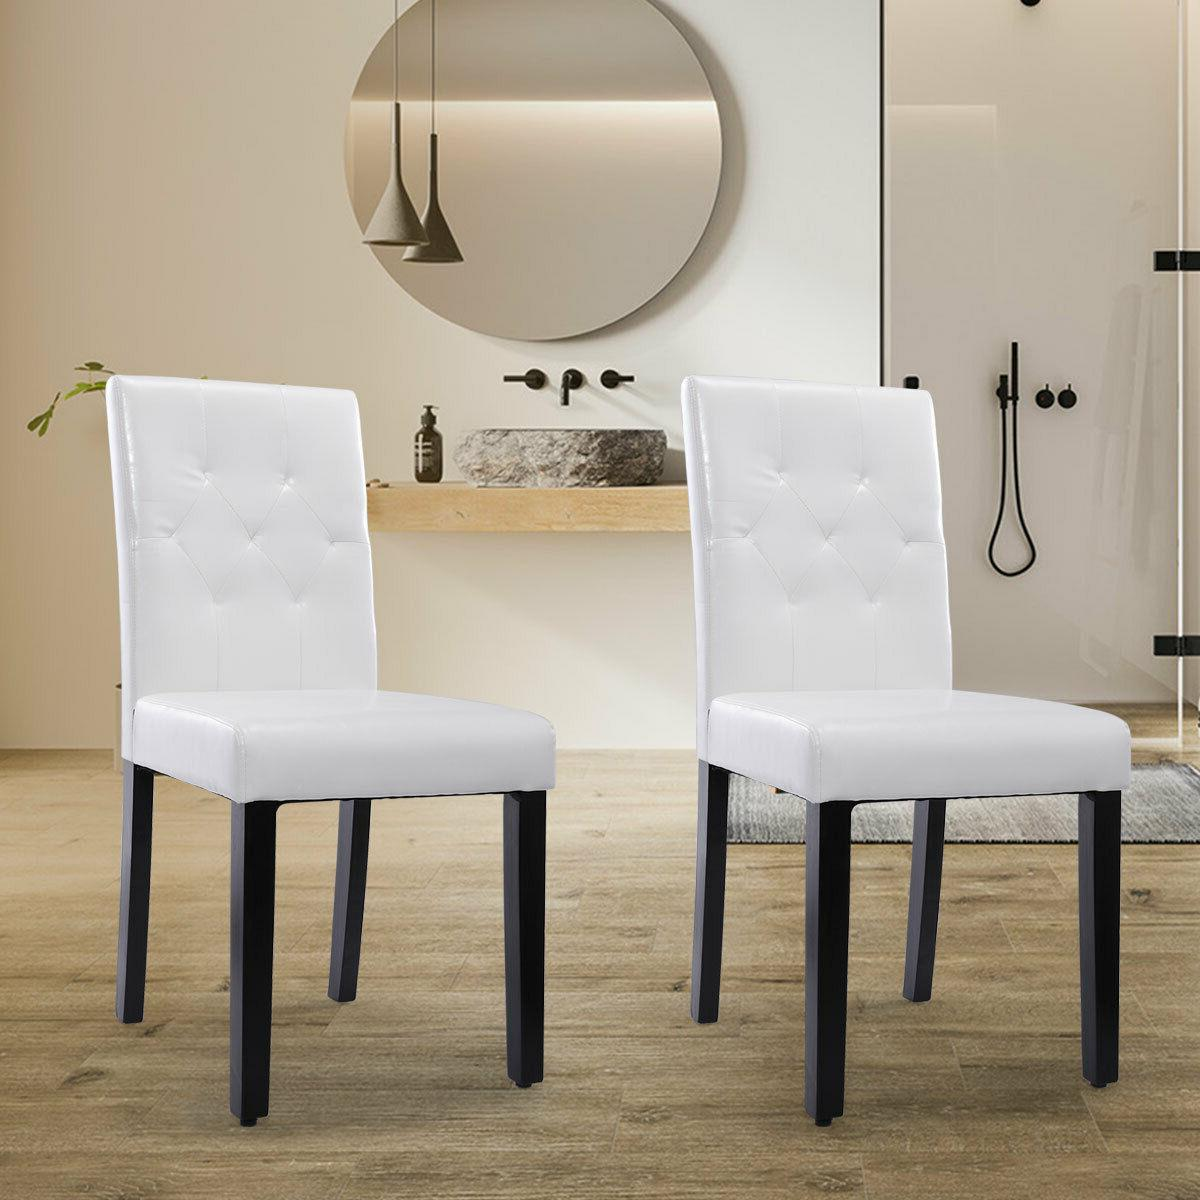 2 4 6pcs dining room chair kitchen